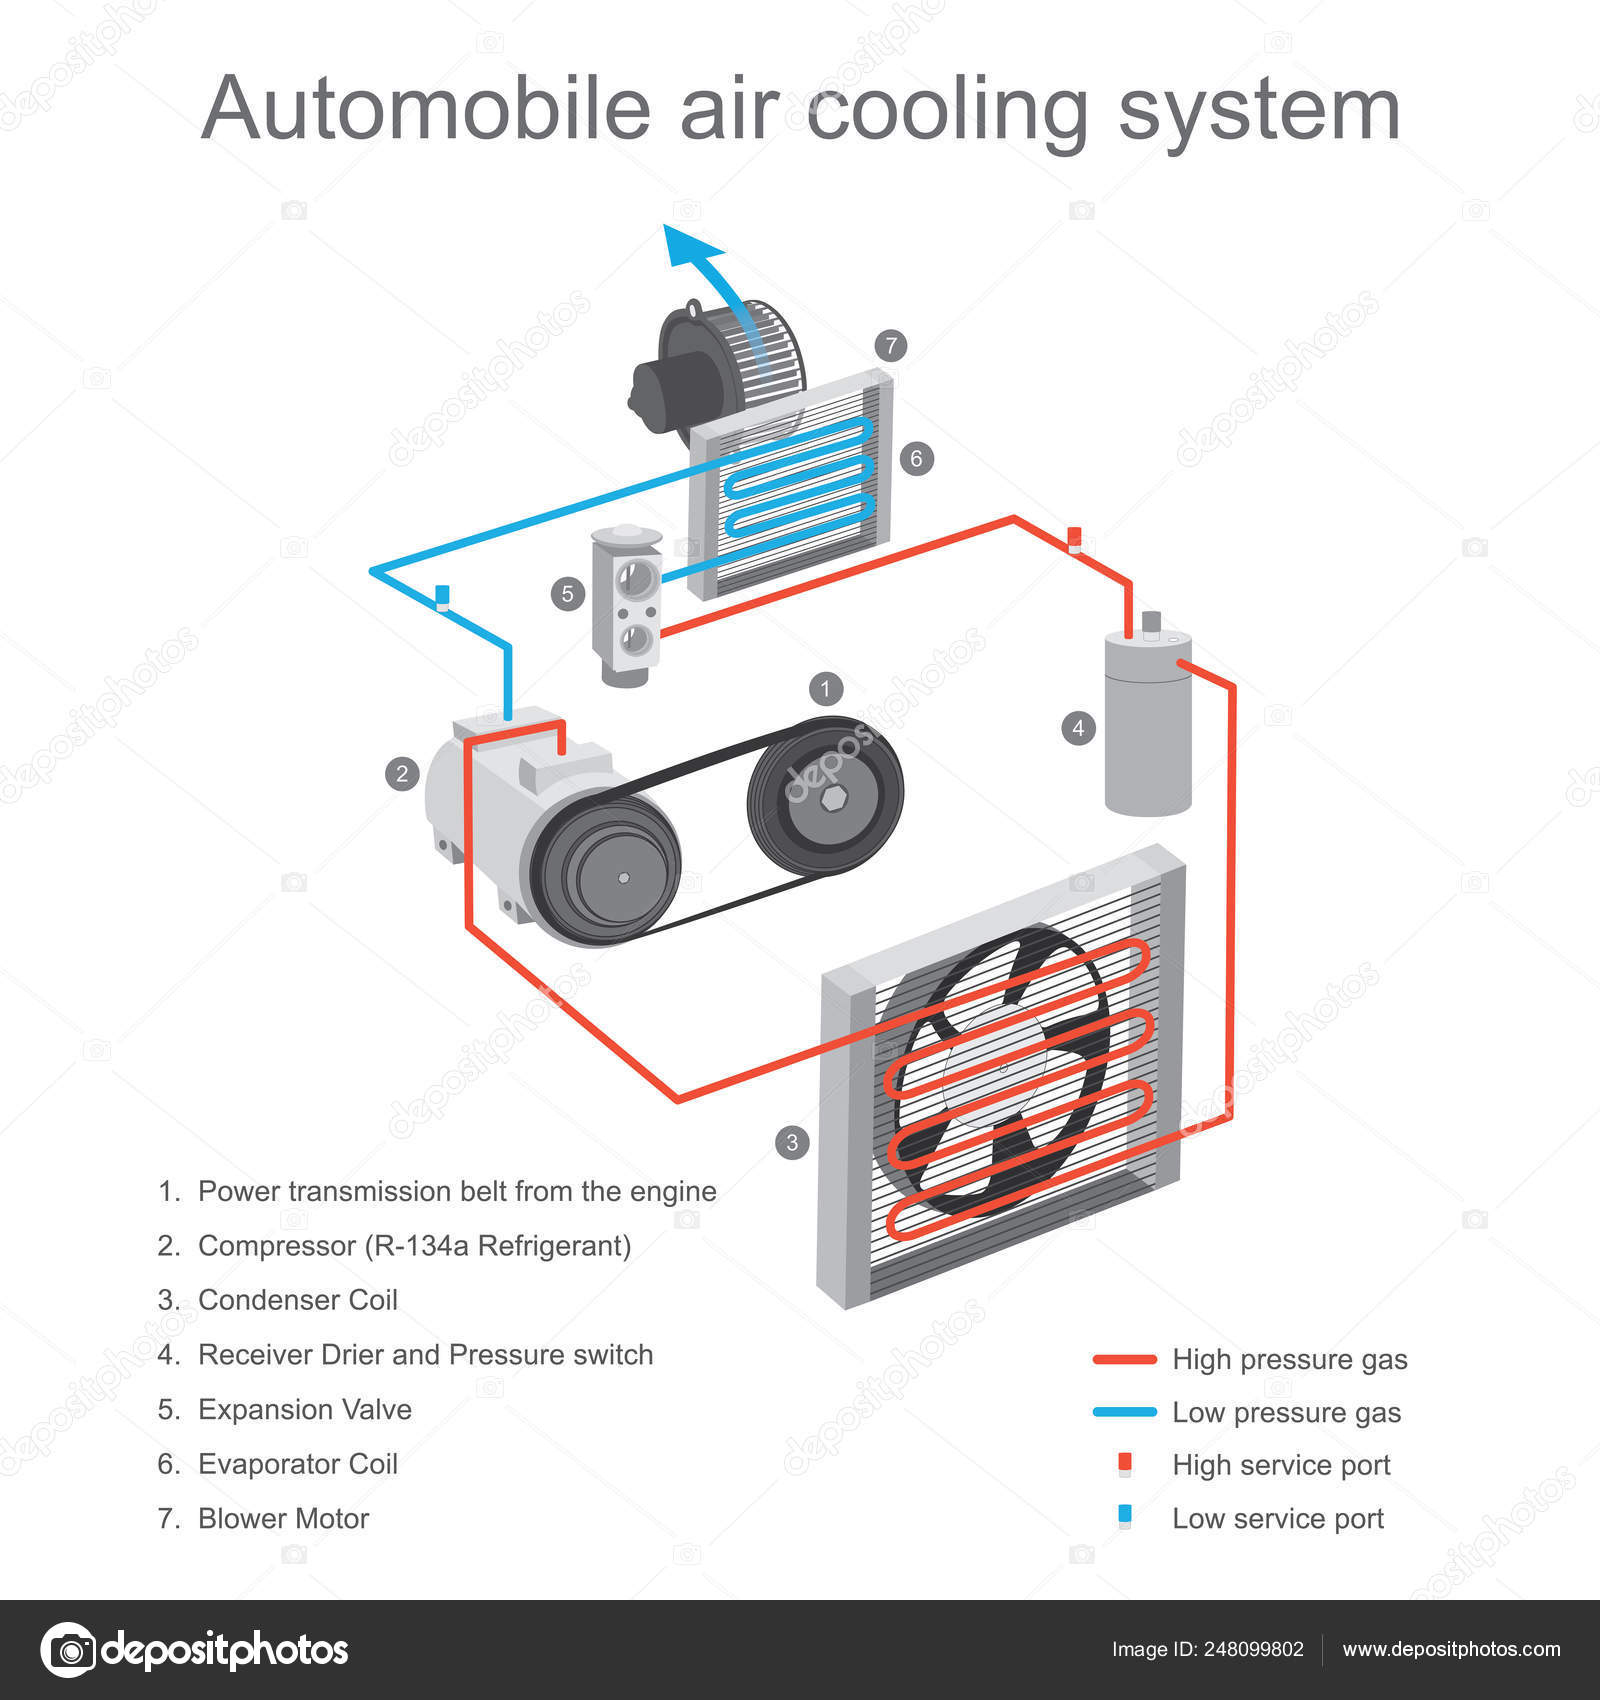 Car Cooling System >> Automobile Air Cooling System The Air Cooling System In The